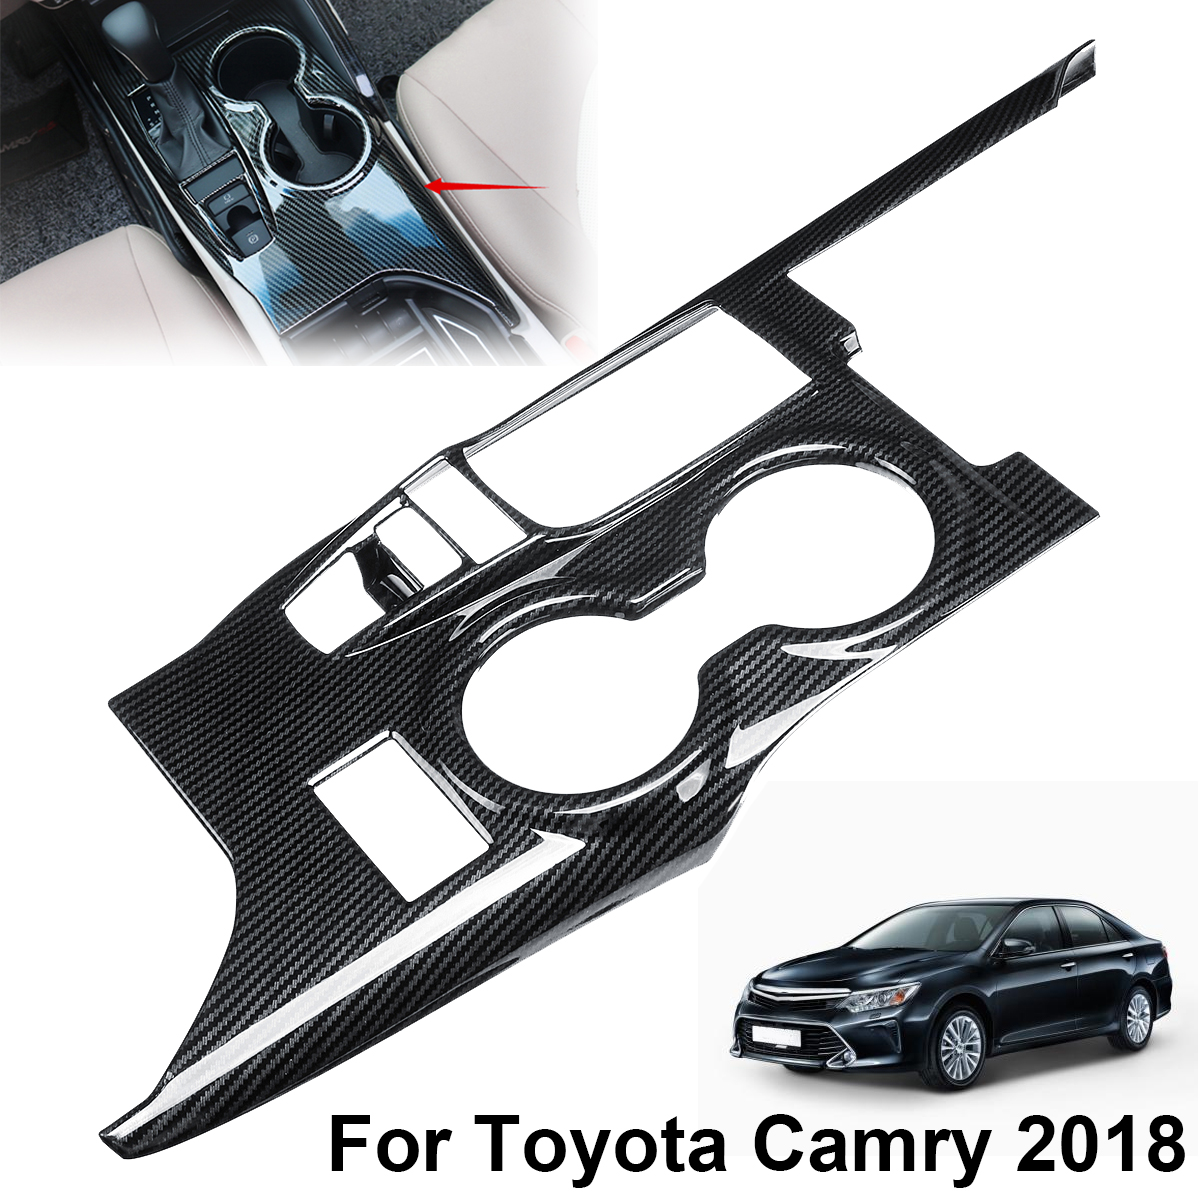 Audew Carbon Fiber Car Interior Gear Shift Box Panel Cover Trim for Toyota Camry 2018 Auto Interior Mouldings Parts Accessories interior for chevrolet camaro 2016 2017 abs carbon fiber style transmission shift gear panel cover trim 1 piece page 4